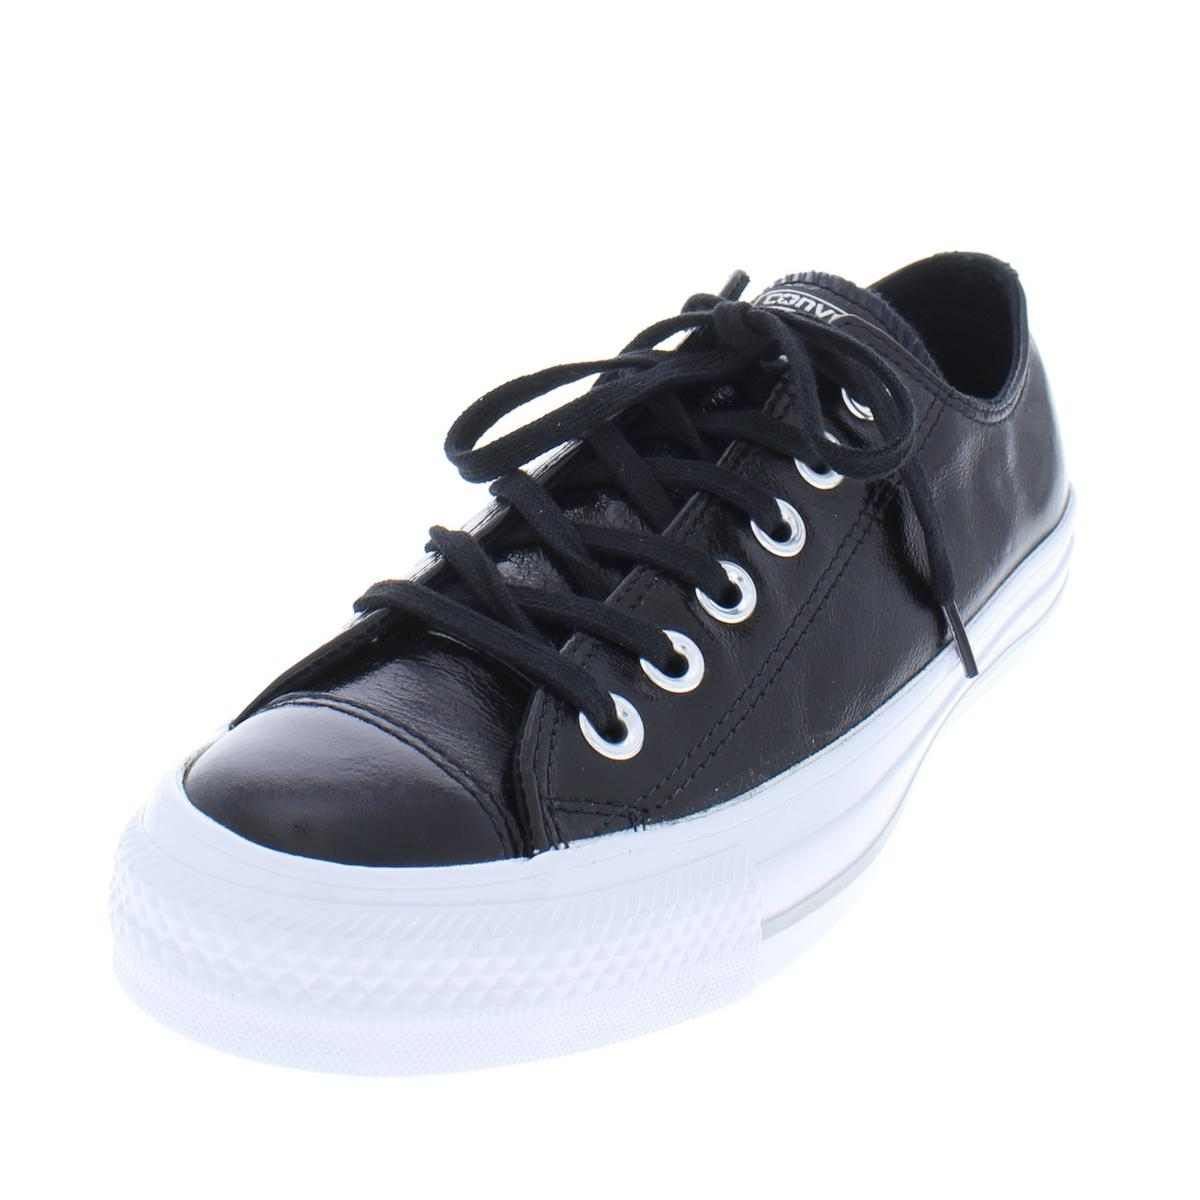 3949dffb9b6 Details about Converse Womens Patent Leather Low Top Oxford Casual Shoes  Sneakers BHFO 8292